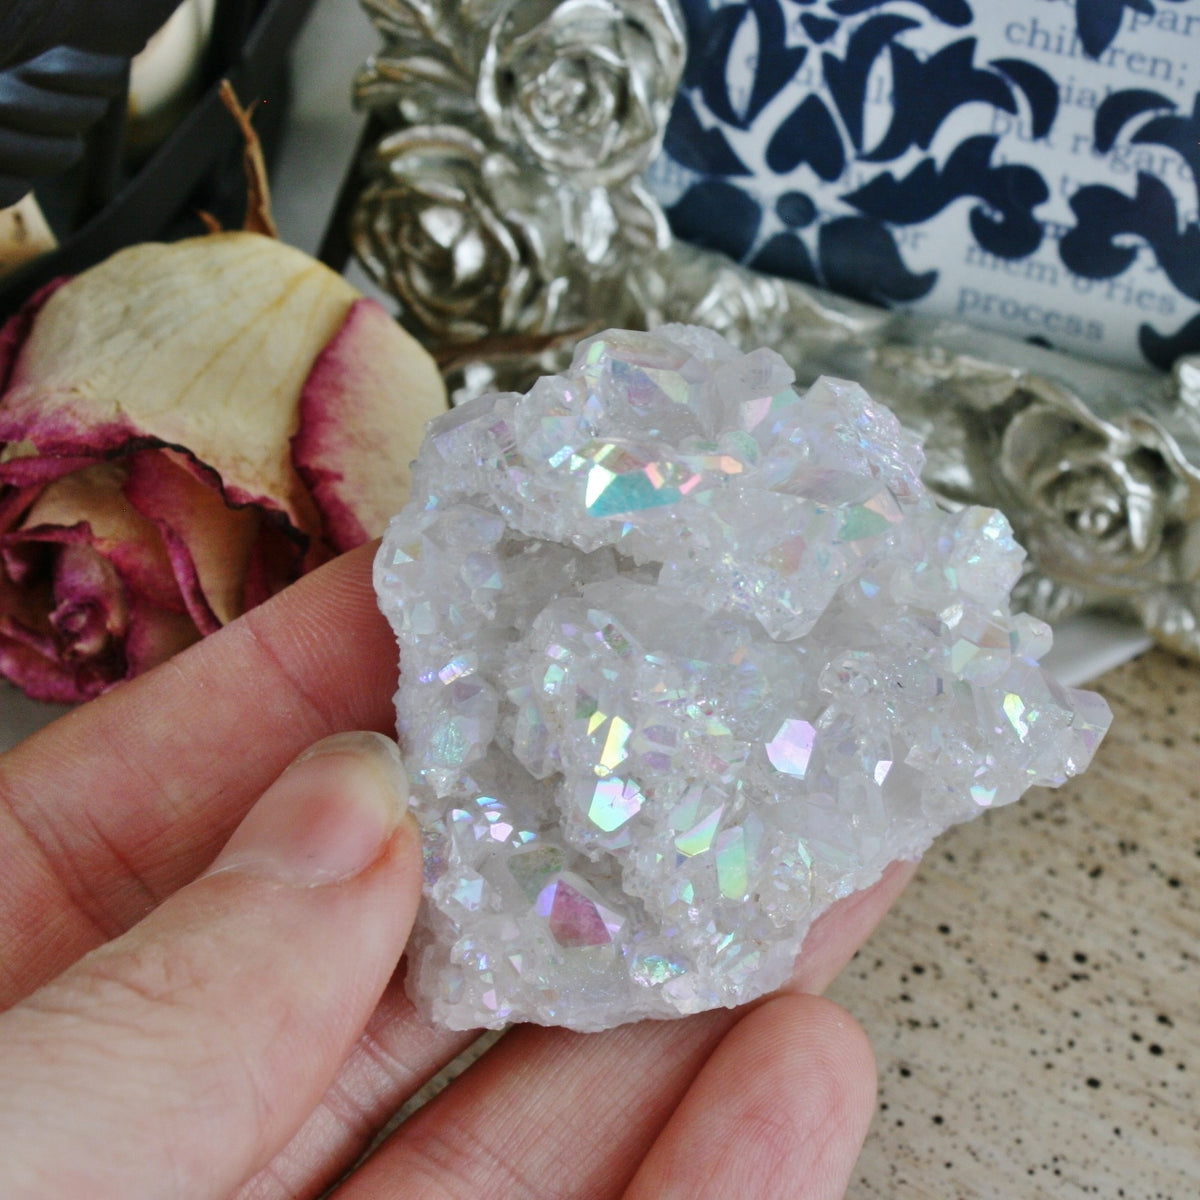 Opal Aura Quartz Crystal Cluster, Angel Aura Quartz Cluster from Arkansas, 44 grams